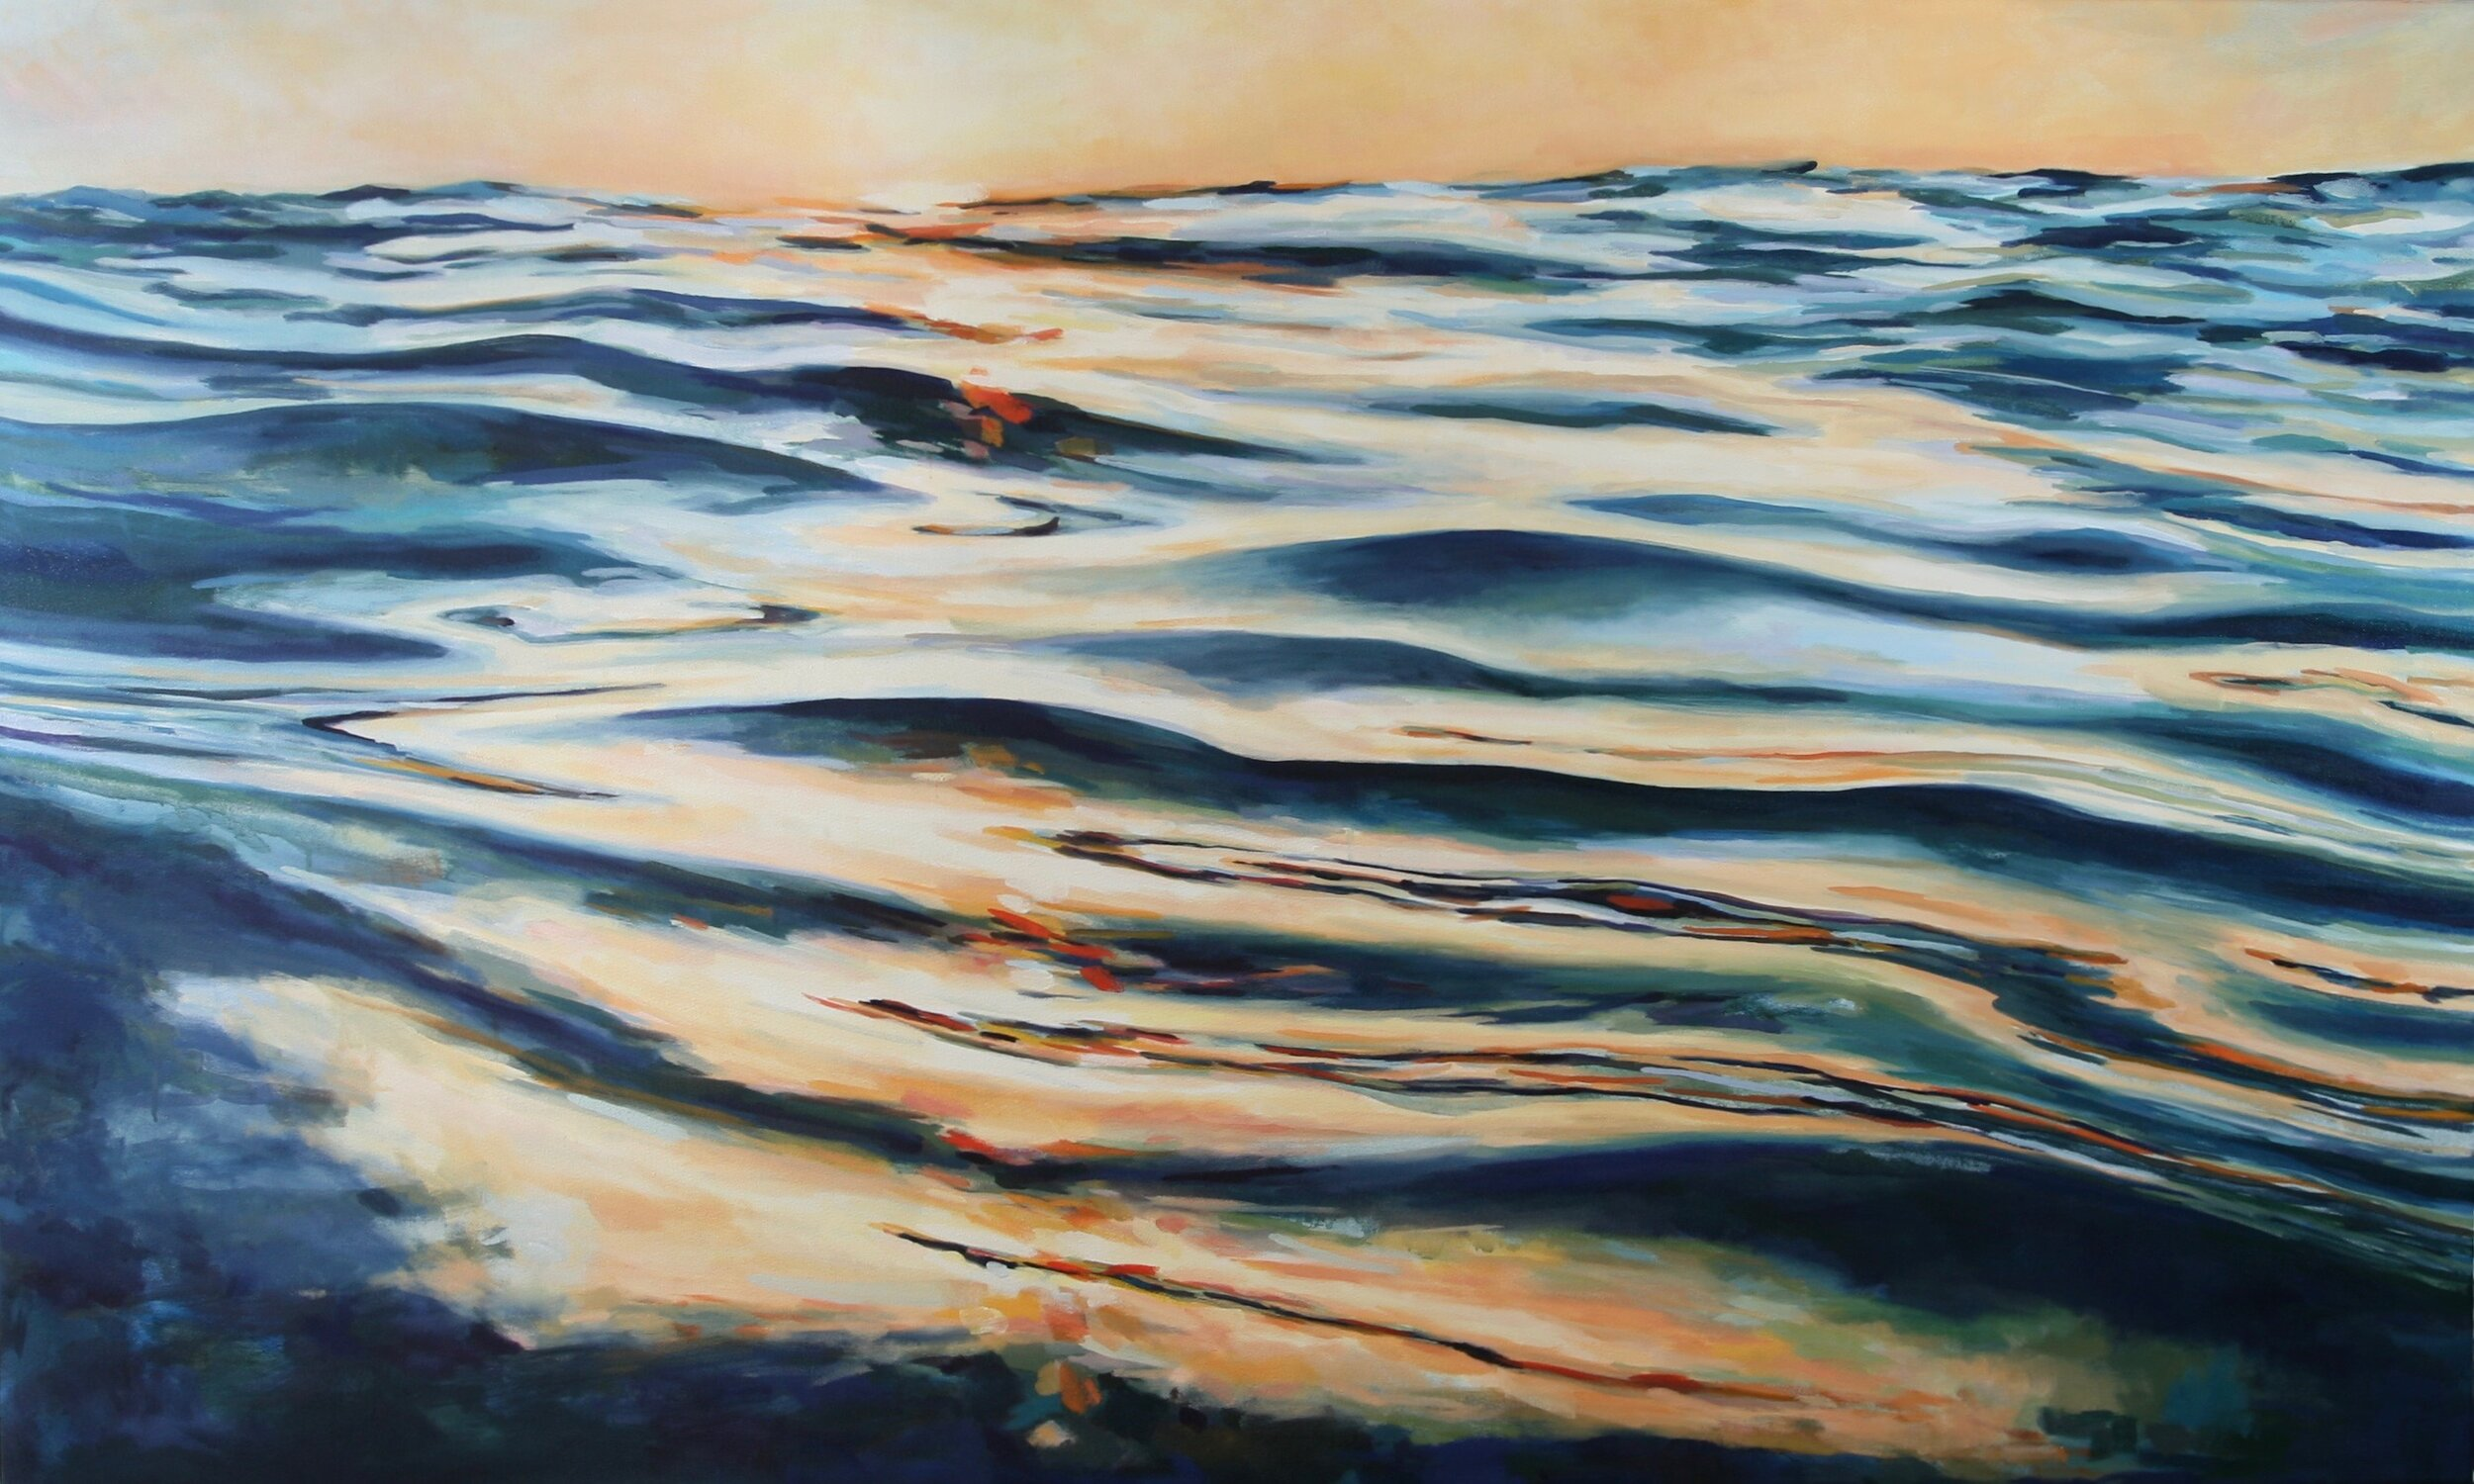 "'Swerve'  2016  60"" x 36""  water soluble oil on canvas  sold"